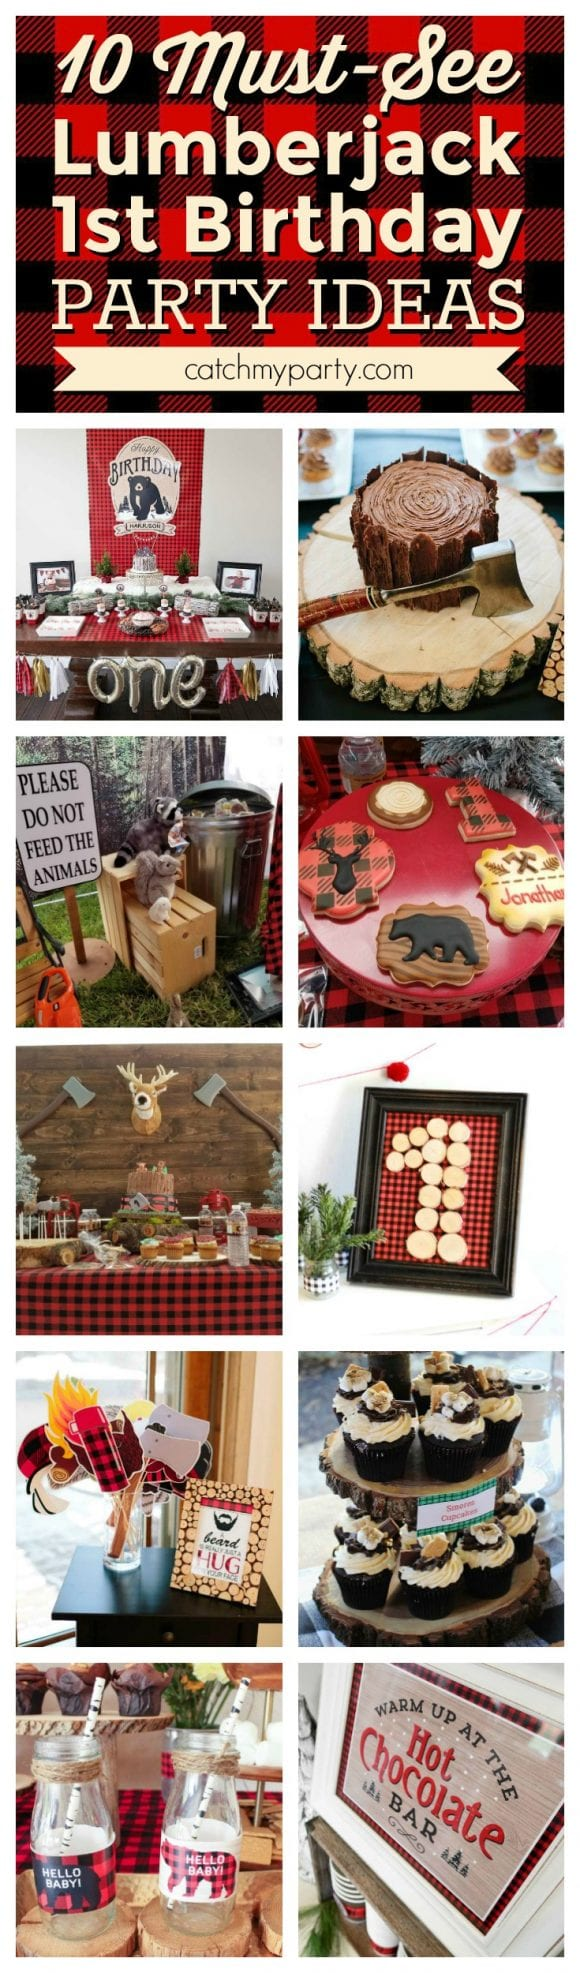 lumberjack 1st birthday party ideas | CatchMyparty.com